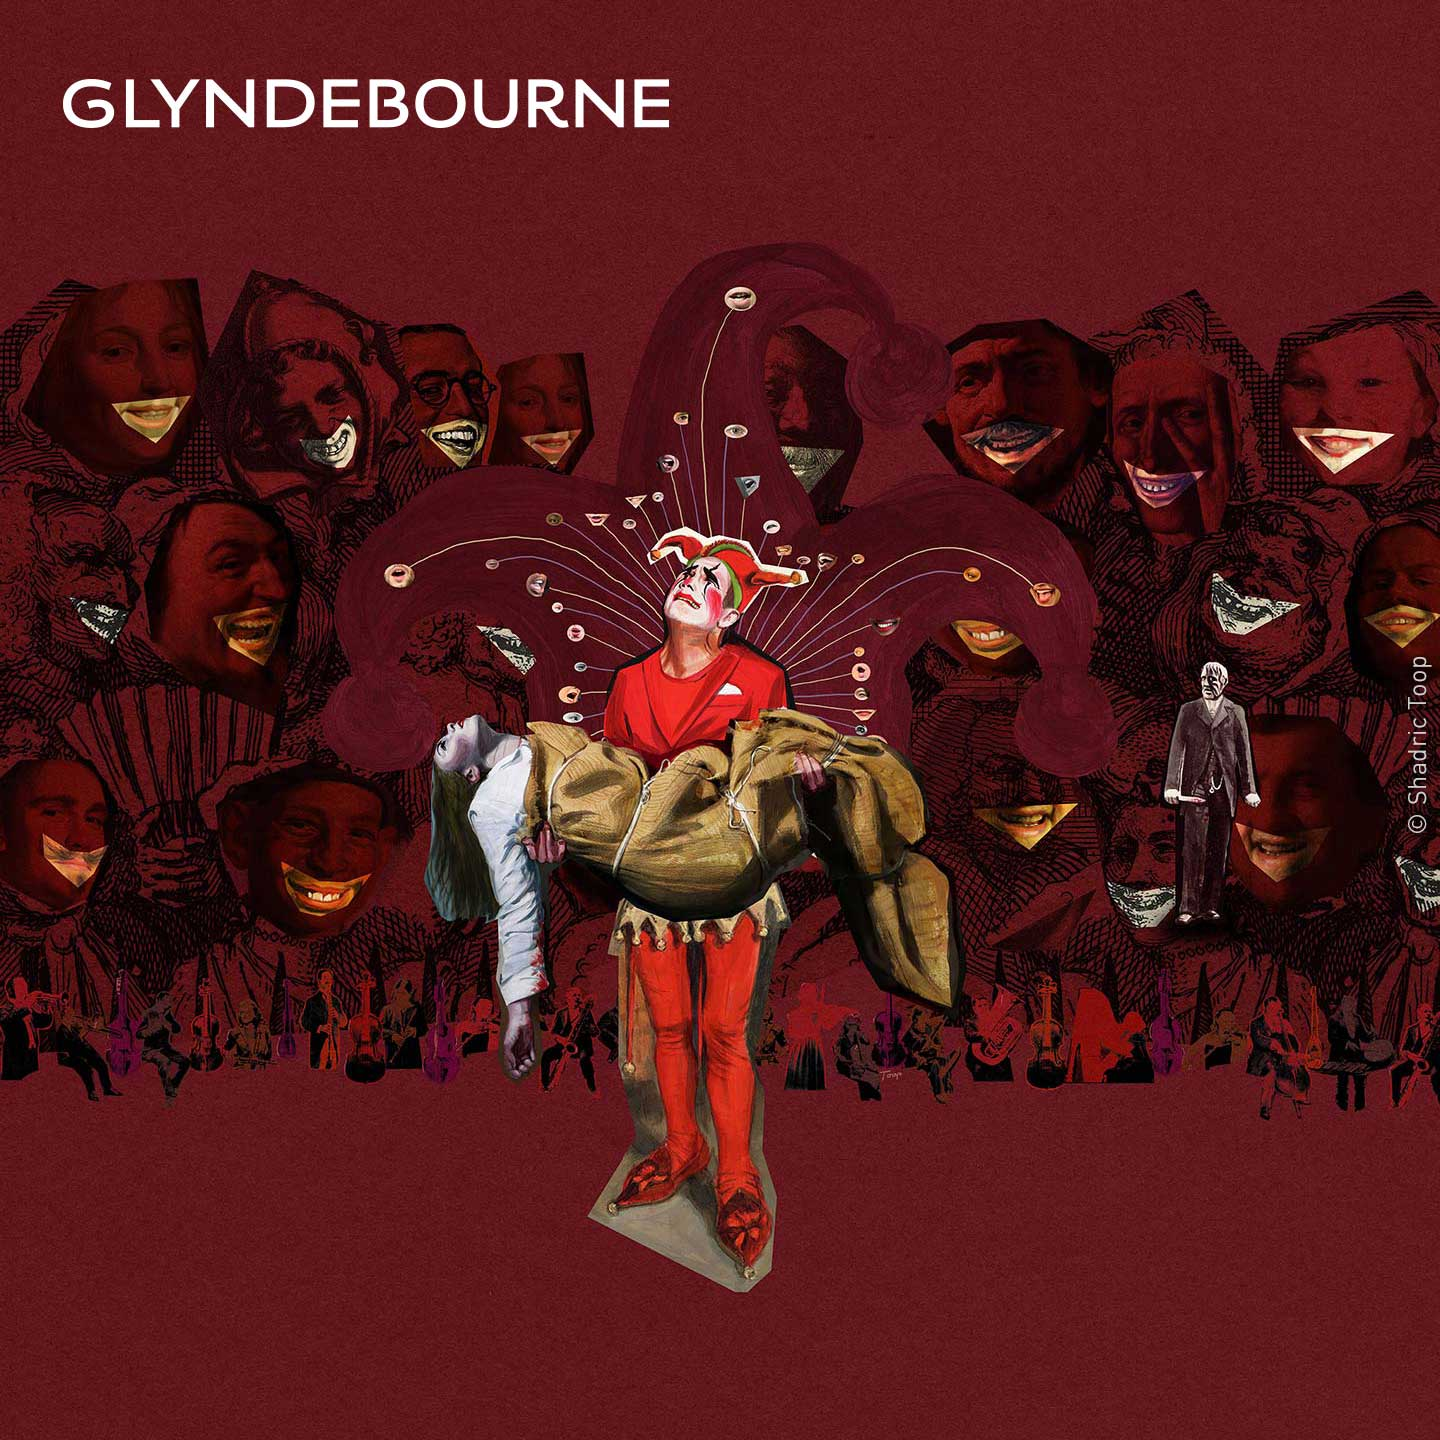 Glyndebourne Tour 2019 brochure Rigoletto spread illustration showing a distressed court jester holding the body of his daughter with strange laughing faces in the background